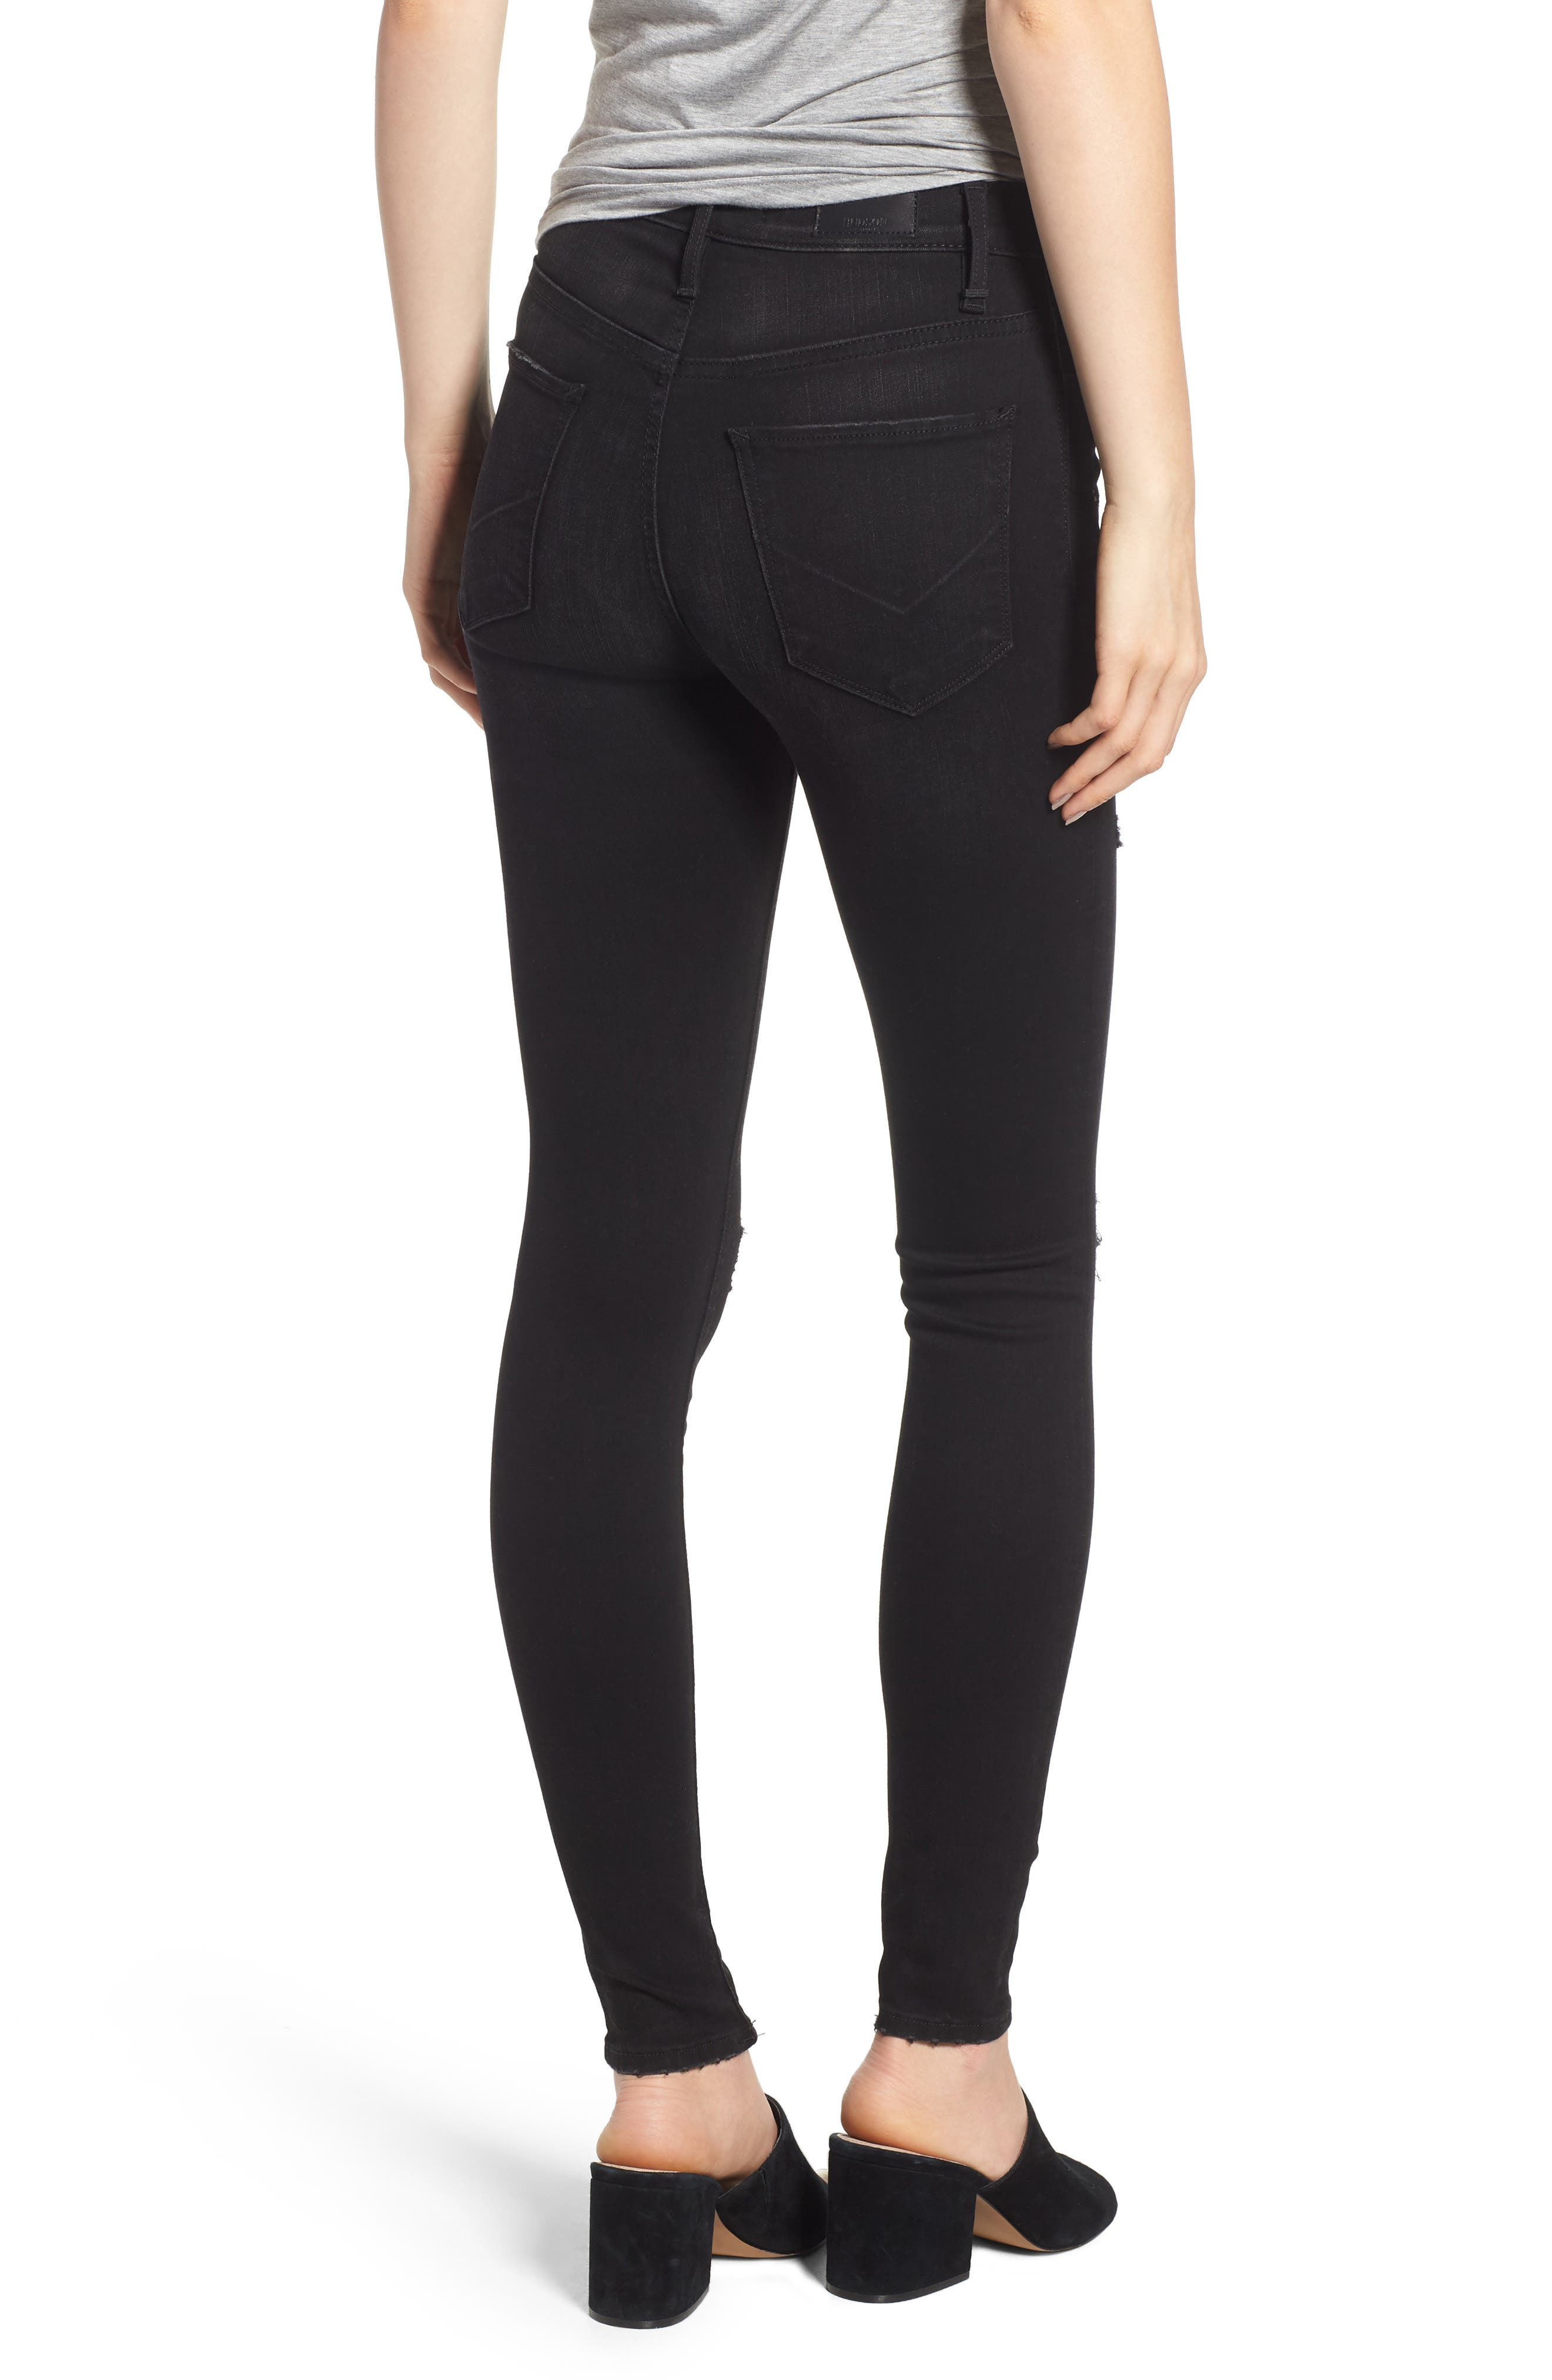 Barbara Ripped High Waist Super Skinny Jeans,                             Alternate thumbnail 2, color,                             WESTBOUND